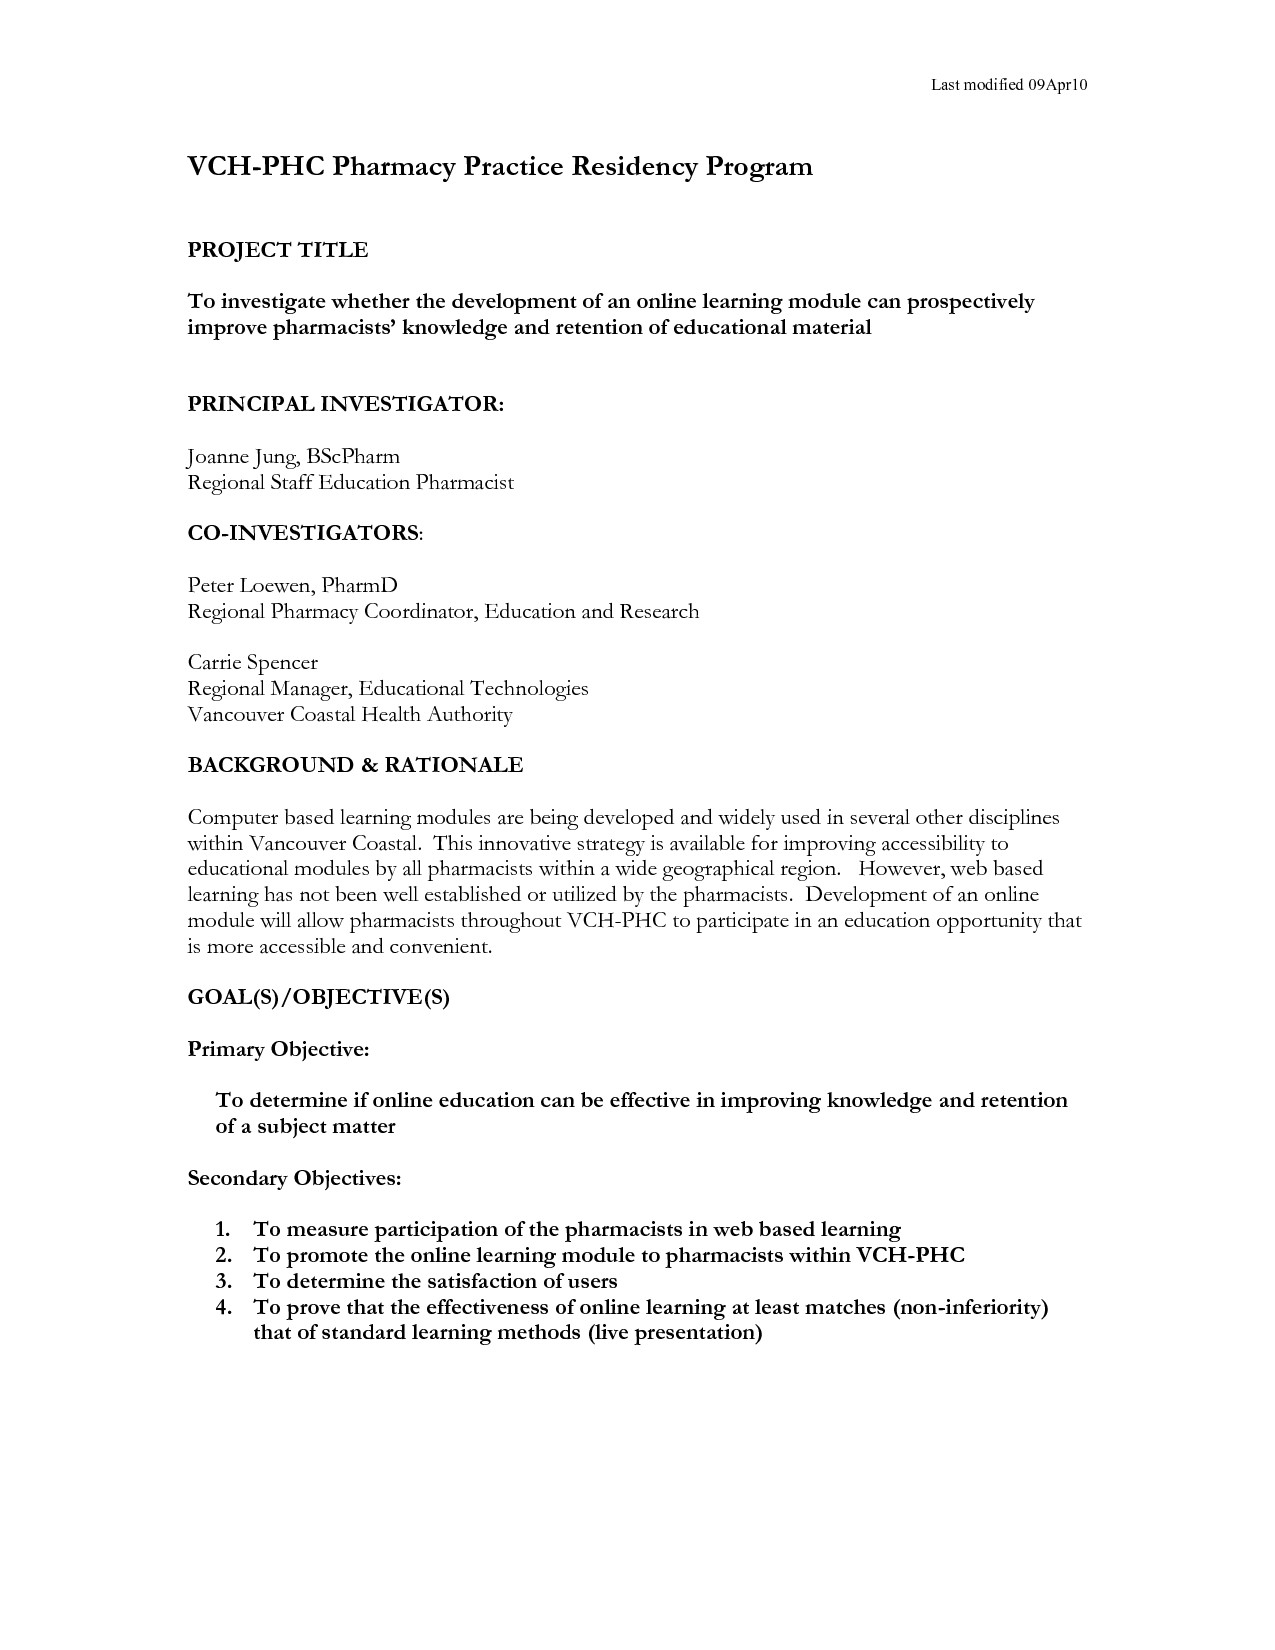 One Page Proposal Template Research Proposal How to Write One